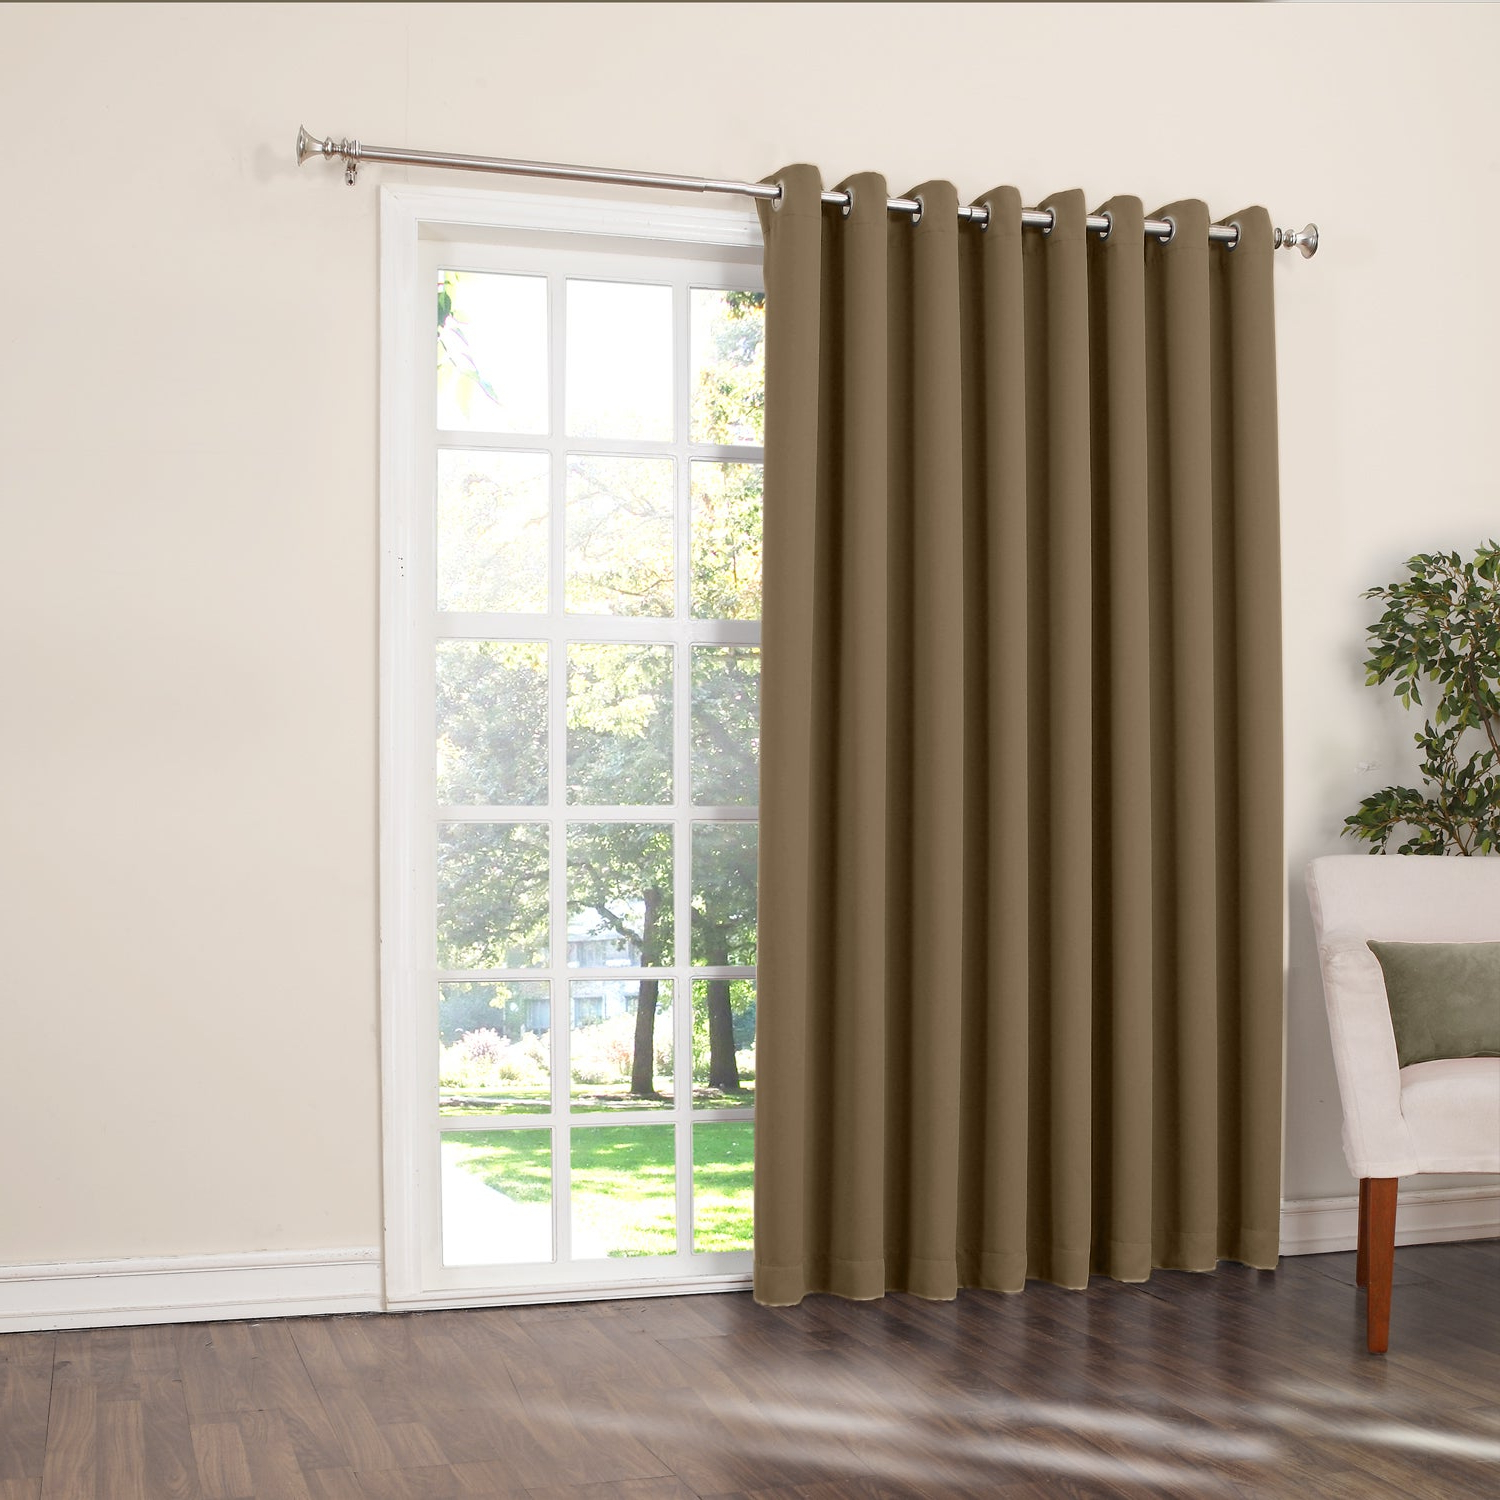 Most Recent Porch & Den Nantahala Extra Wide Patio Door Curtain Panel Pertaining To Grommet Blackout Patio Door Window Curtain Panels (Gallery 7 of 20)